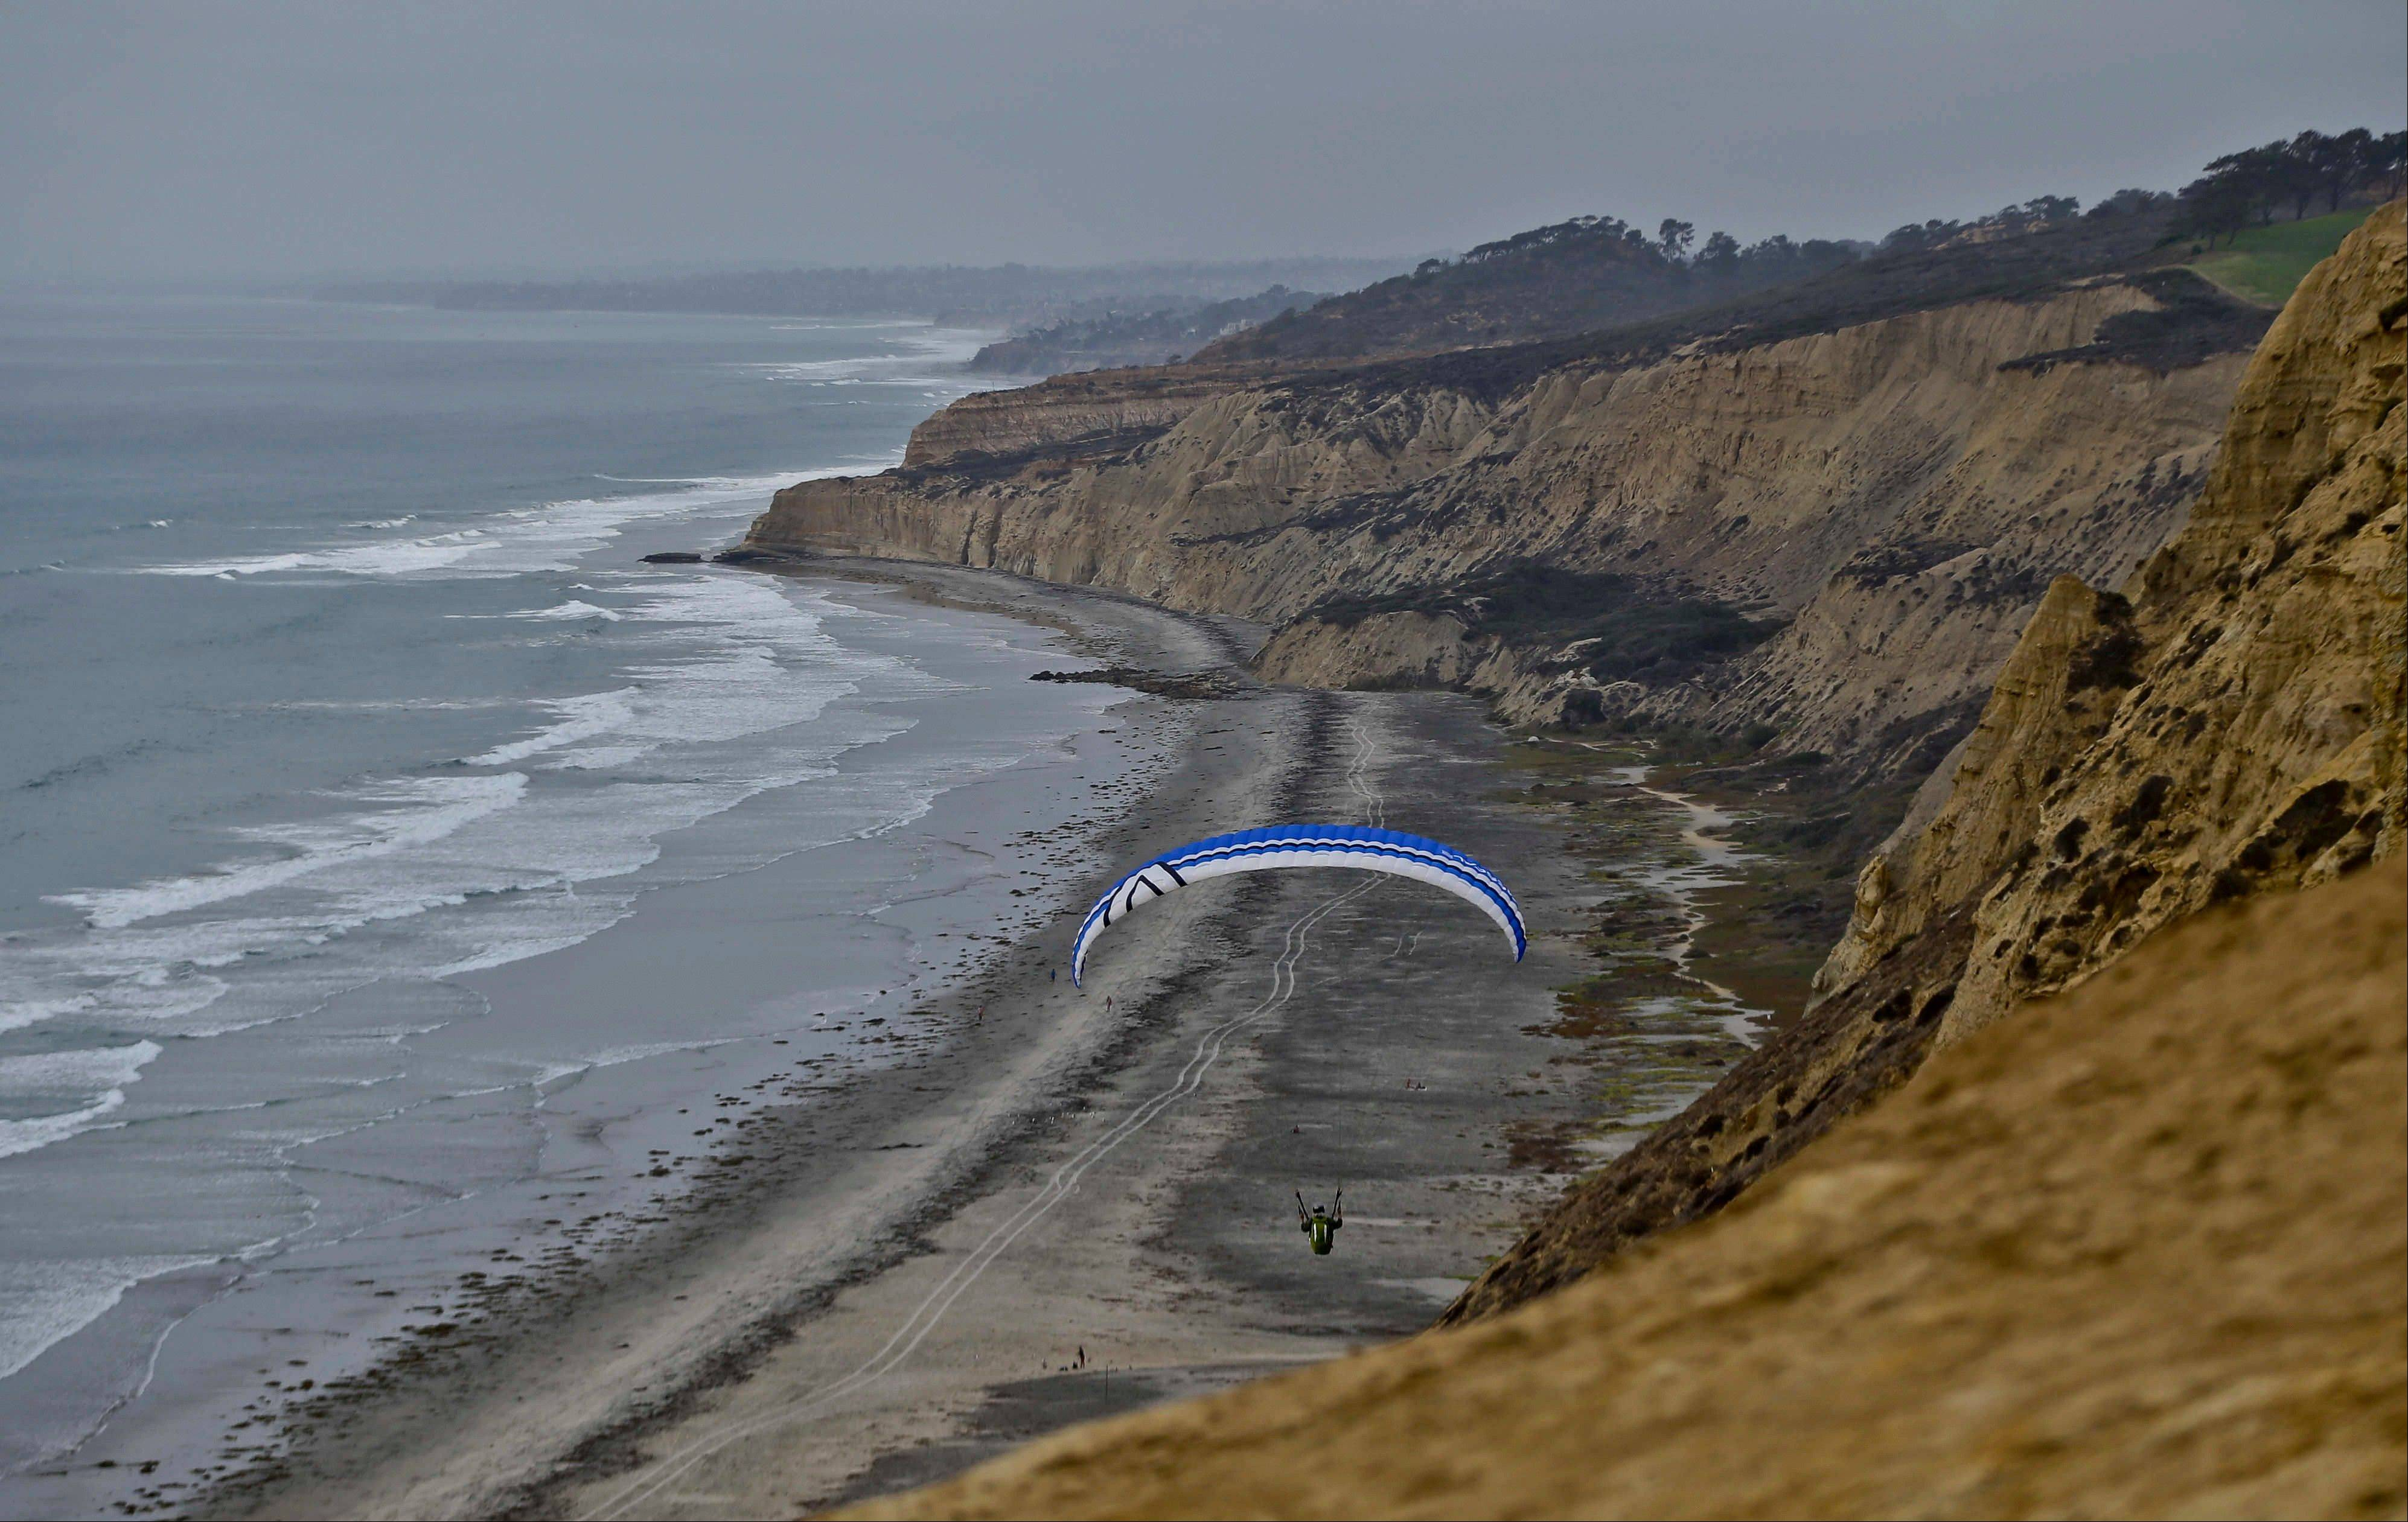 A lone glider sails north over the rugged cliffs of the Southern California coast in San Diego. The glider port is open to the public and offers fantastic views and refreshments.